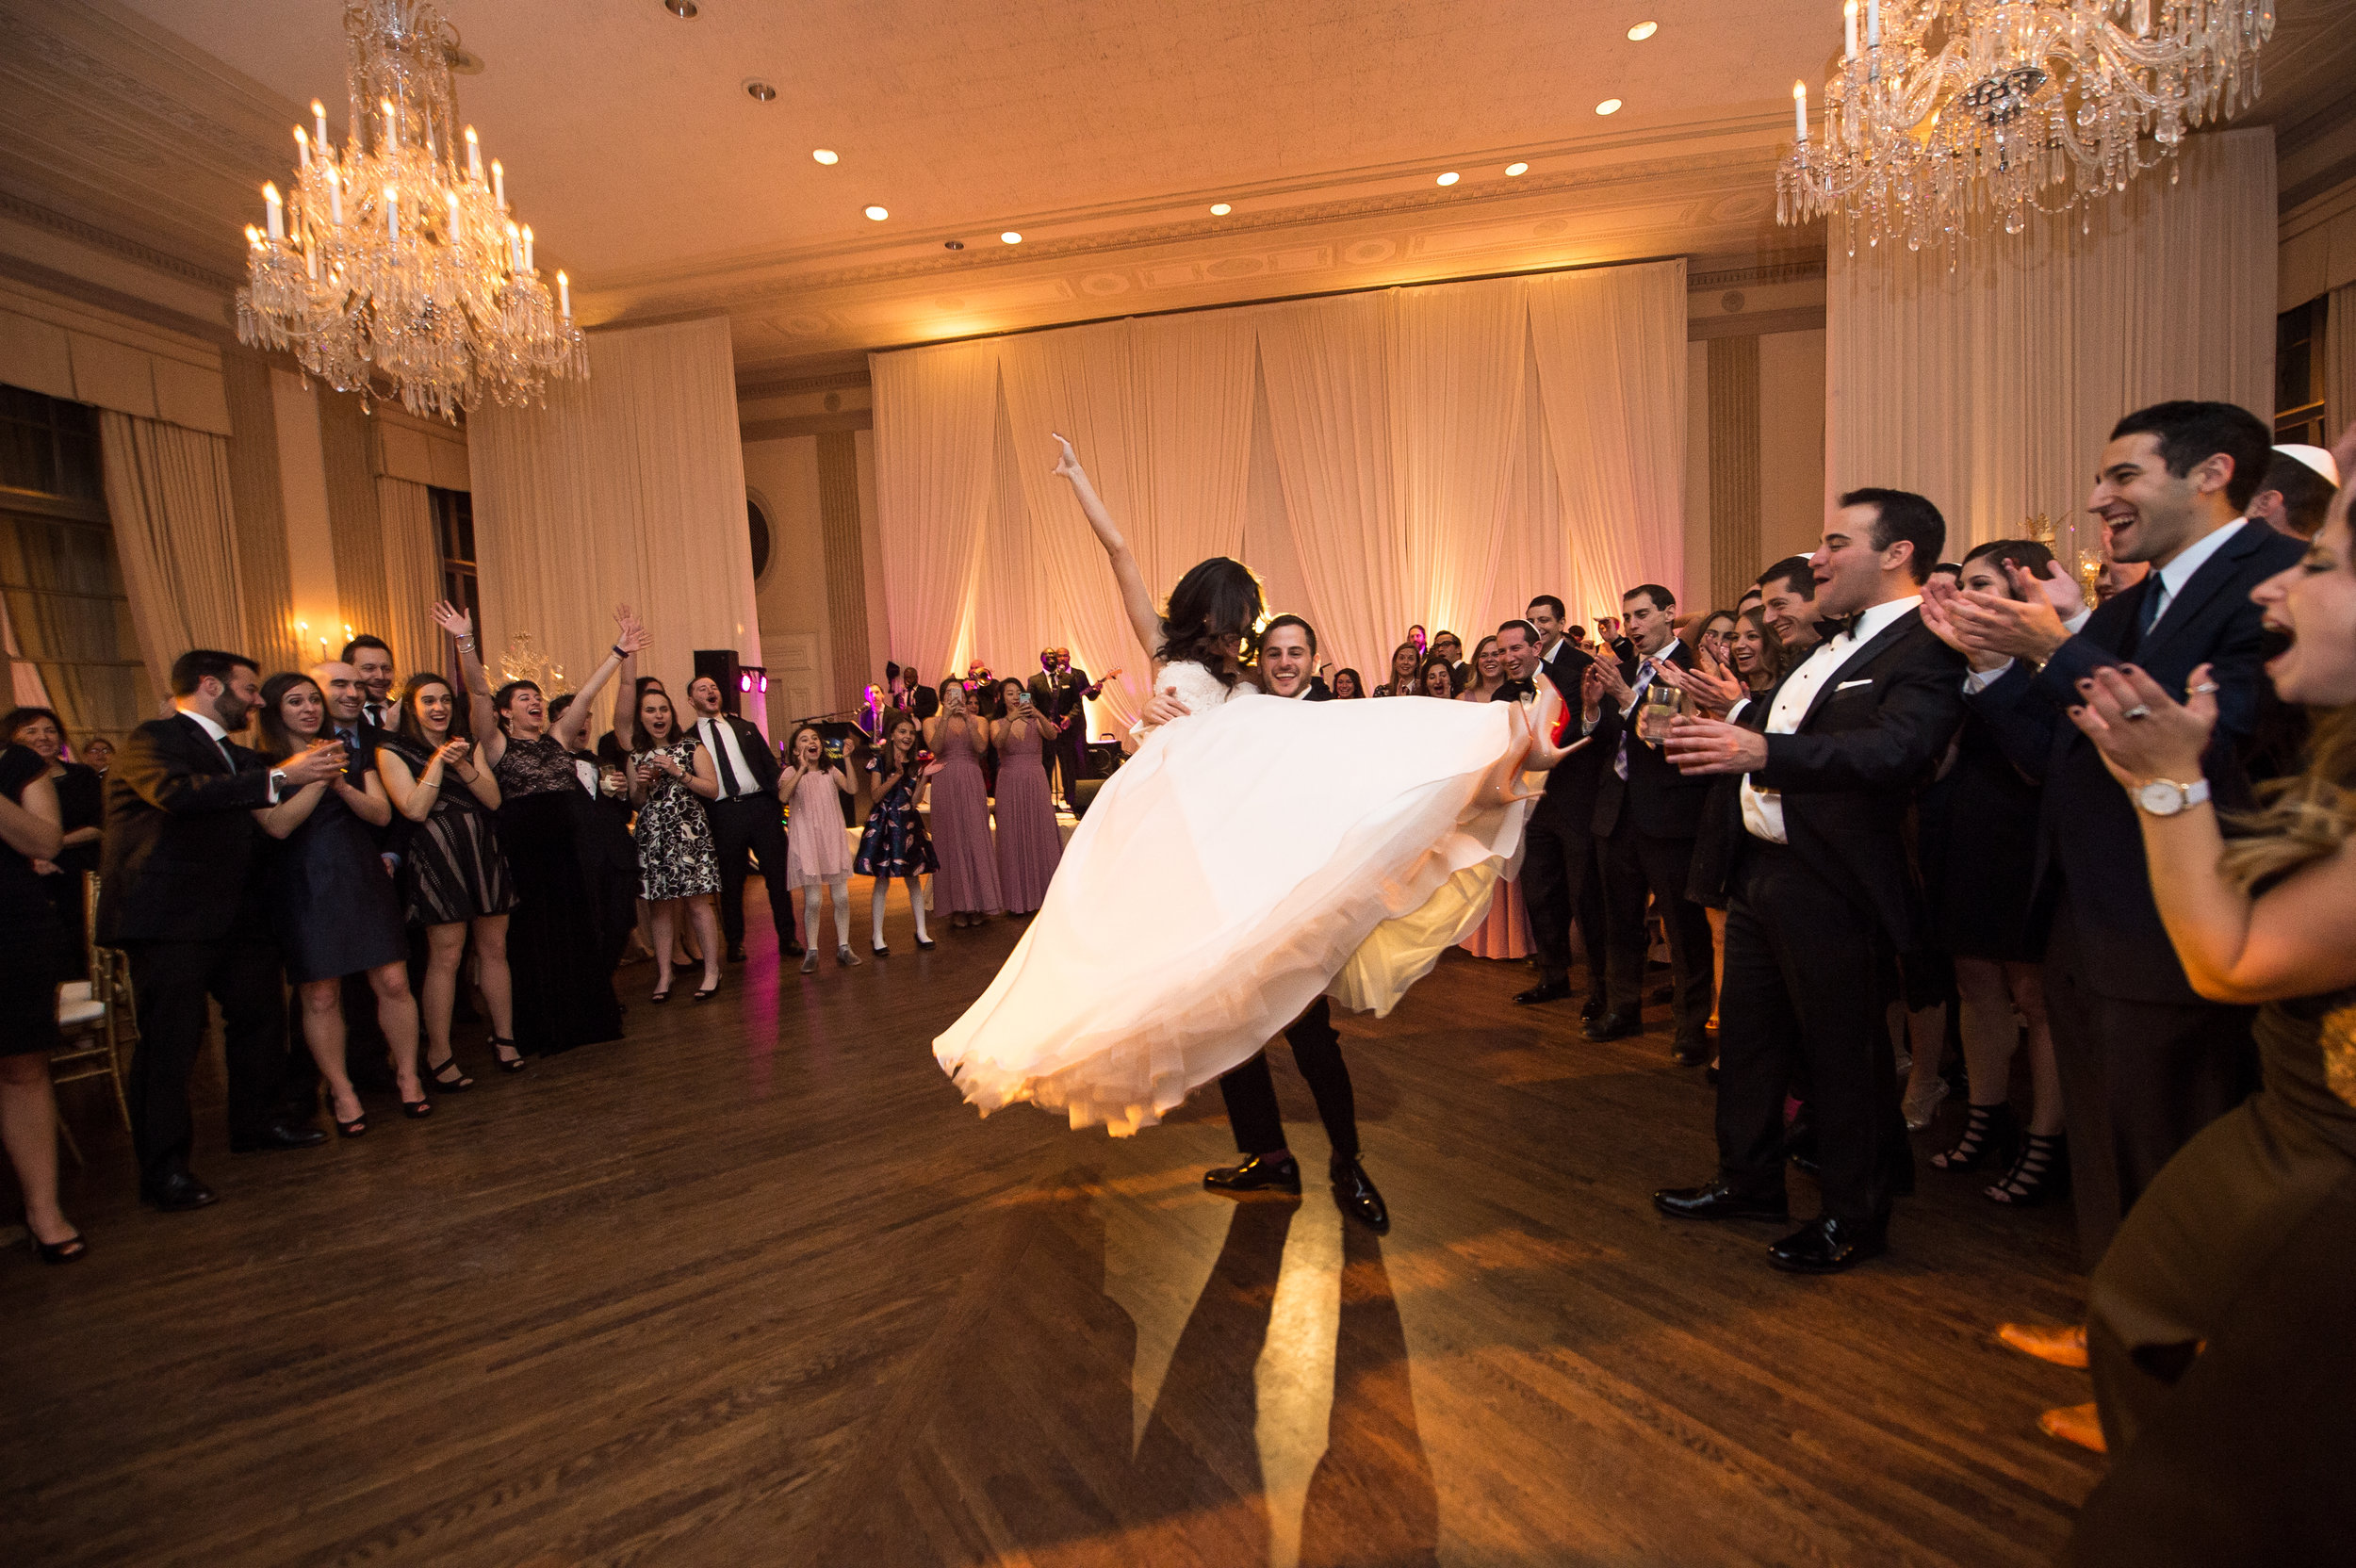 A groom lifting the bride during their first dance